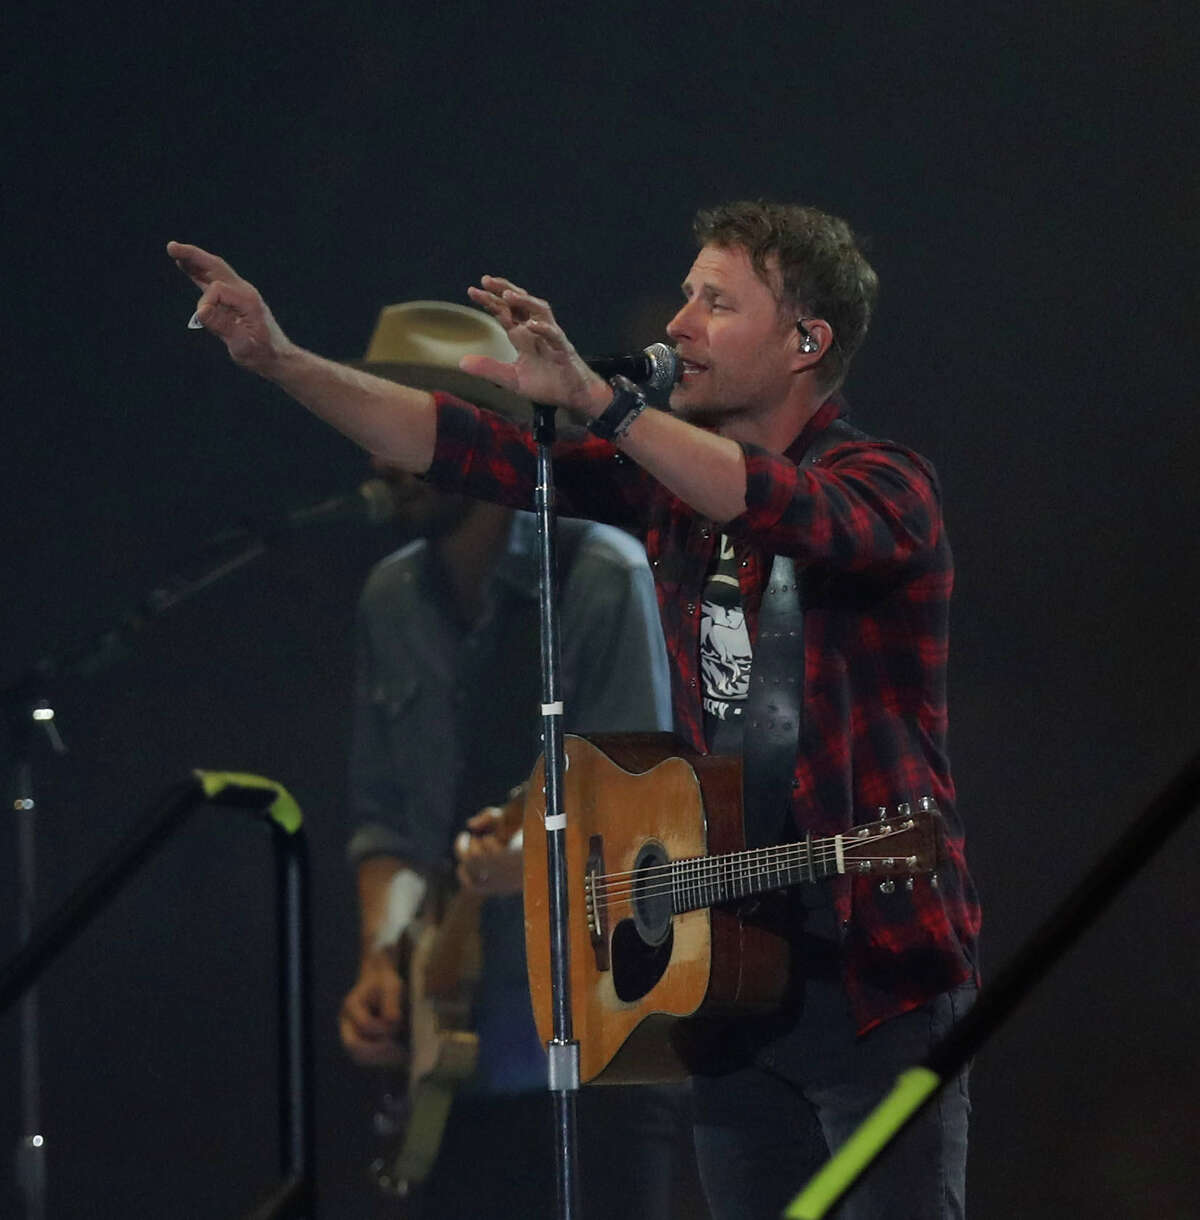 Tito's Made to Order: South on Sept. 10 at 7 p.m. will include performances by Houston rapper Bun B and country music singers Morgan Wallen and Dierks Bentley. Pictured: Dierks Bentley performs at the Houston Livestock Show and Rodeo at NRG Park.